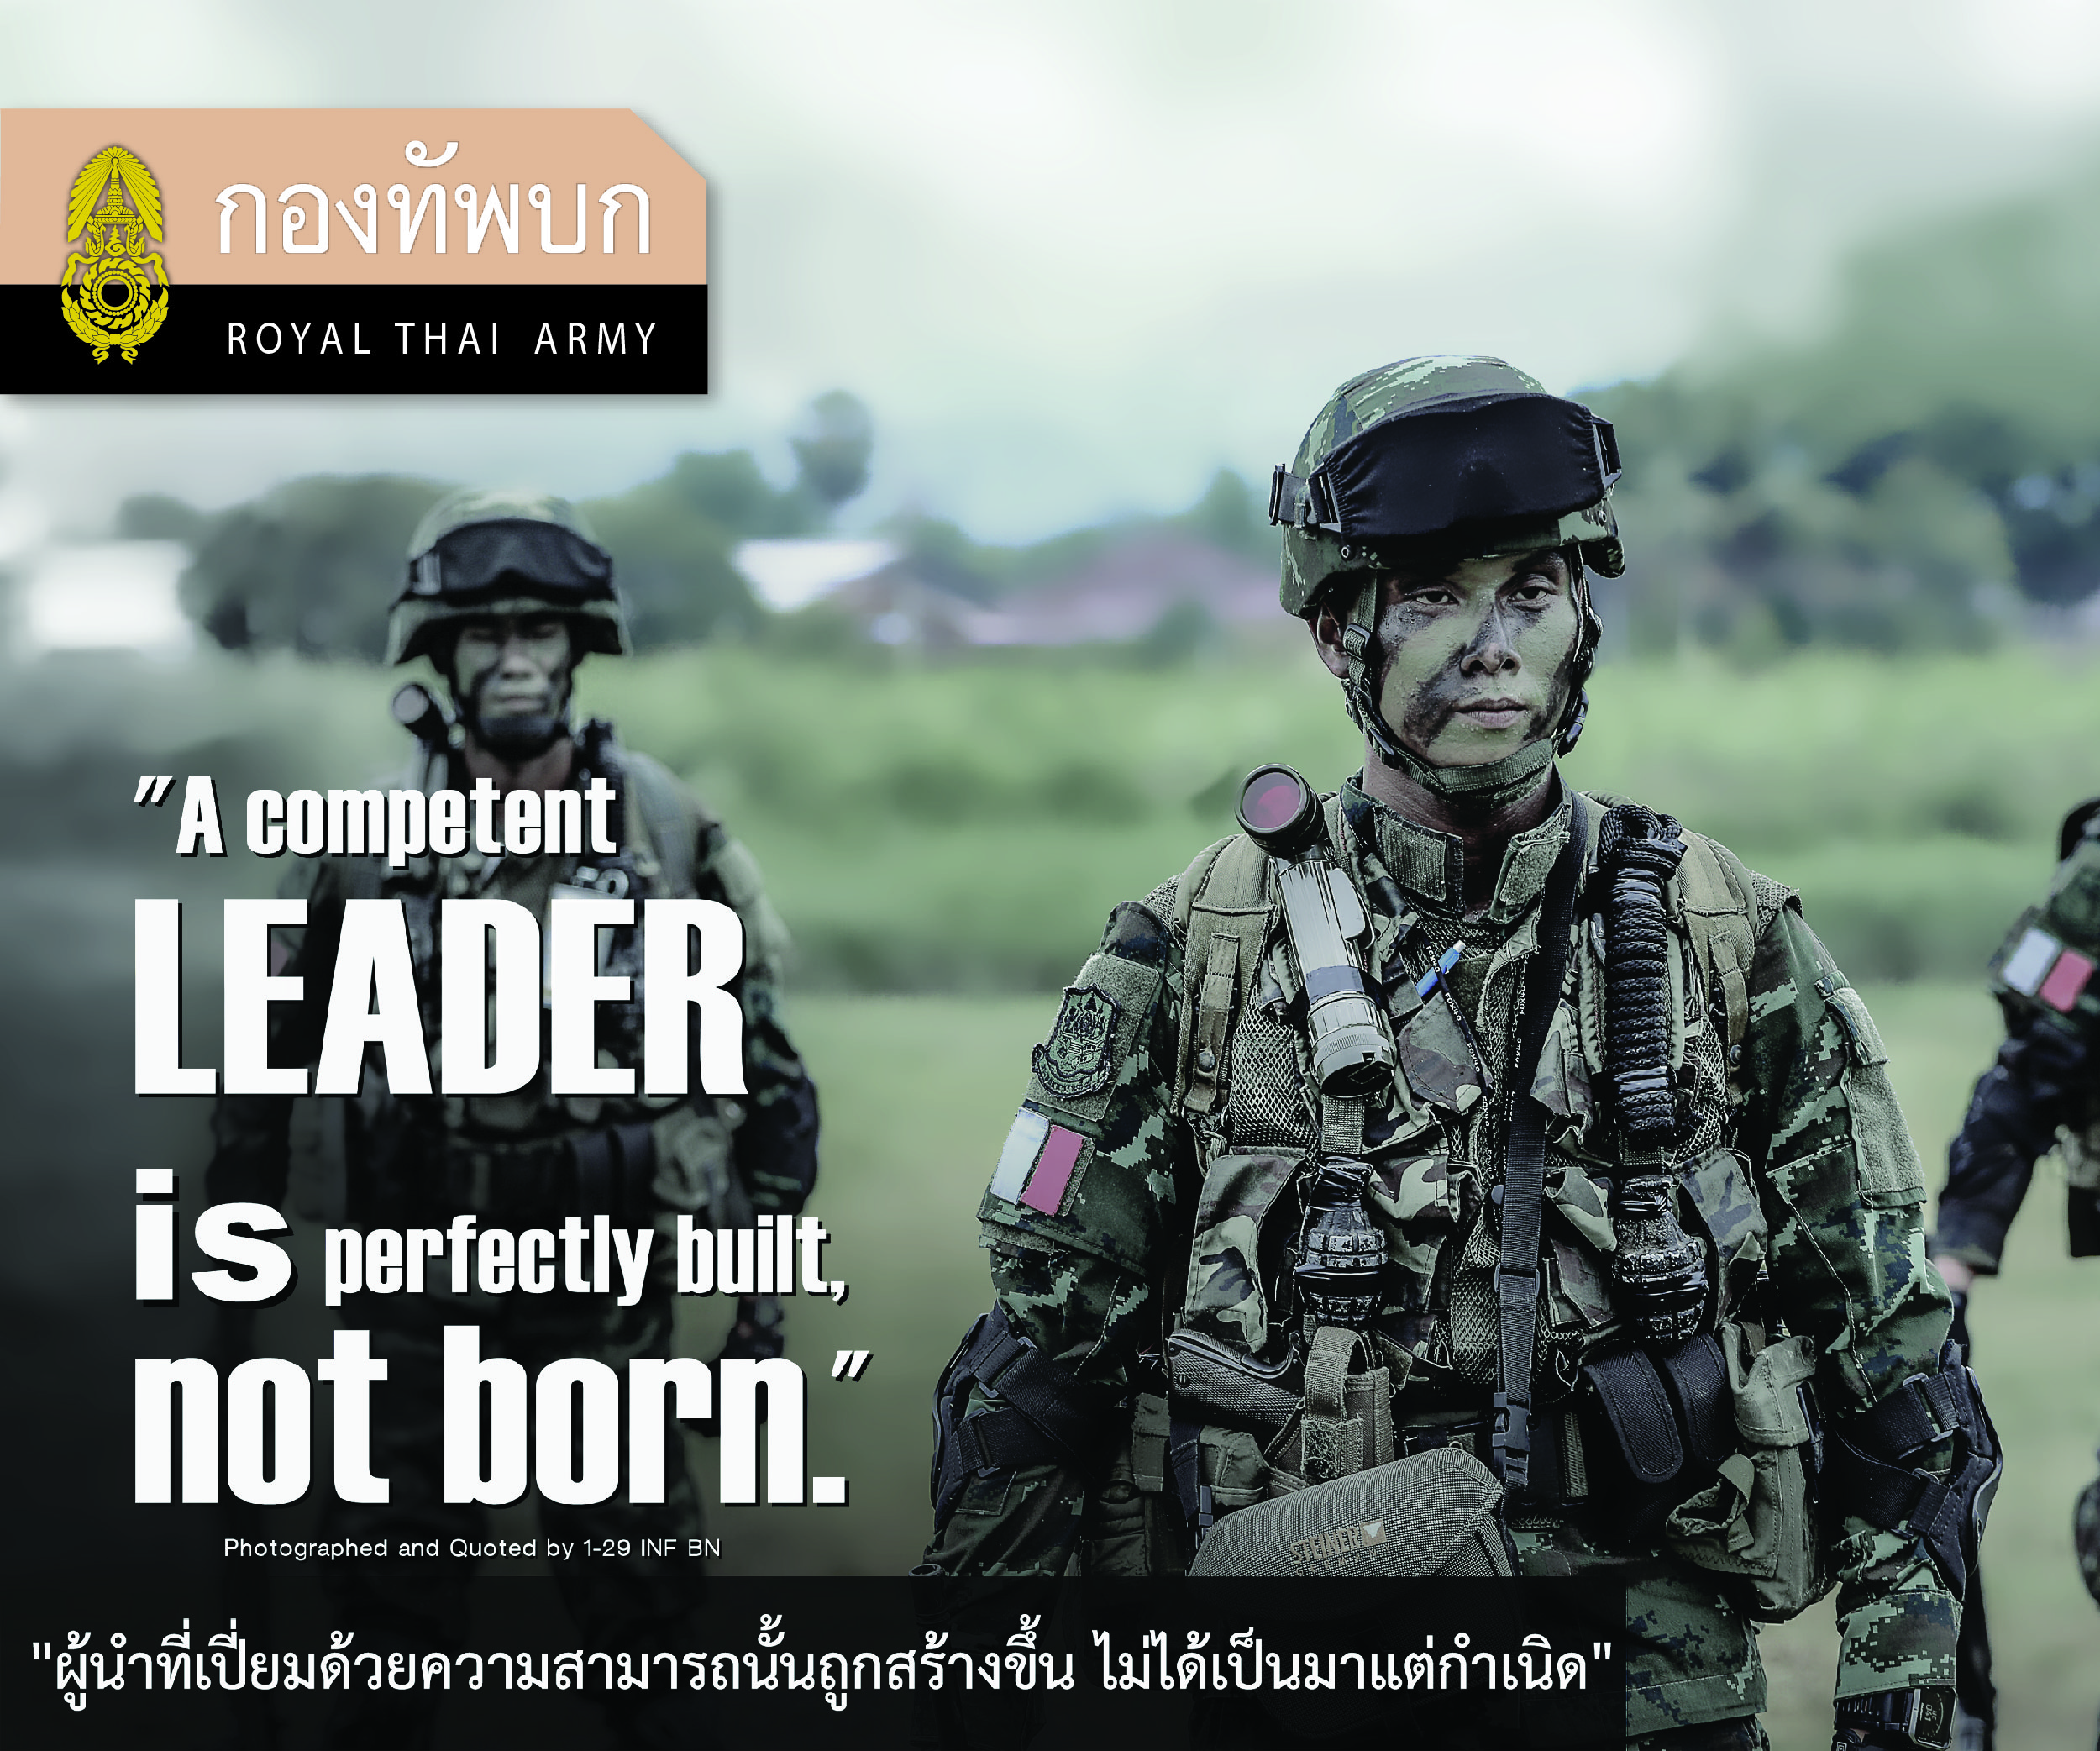 Competent Leader